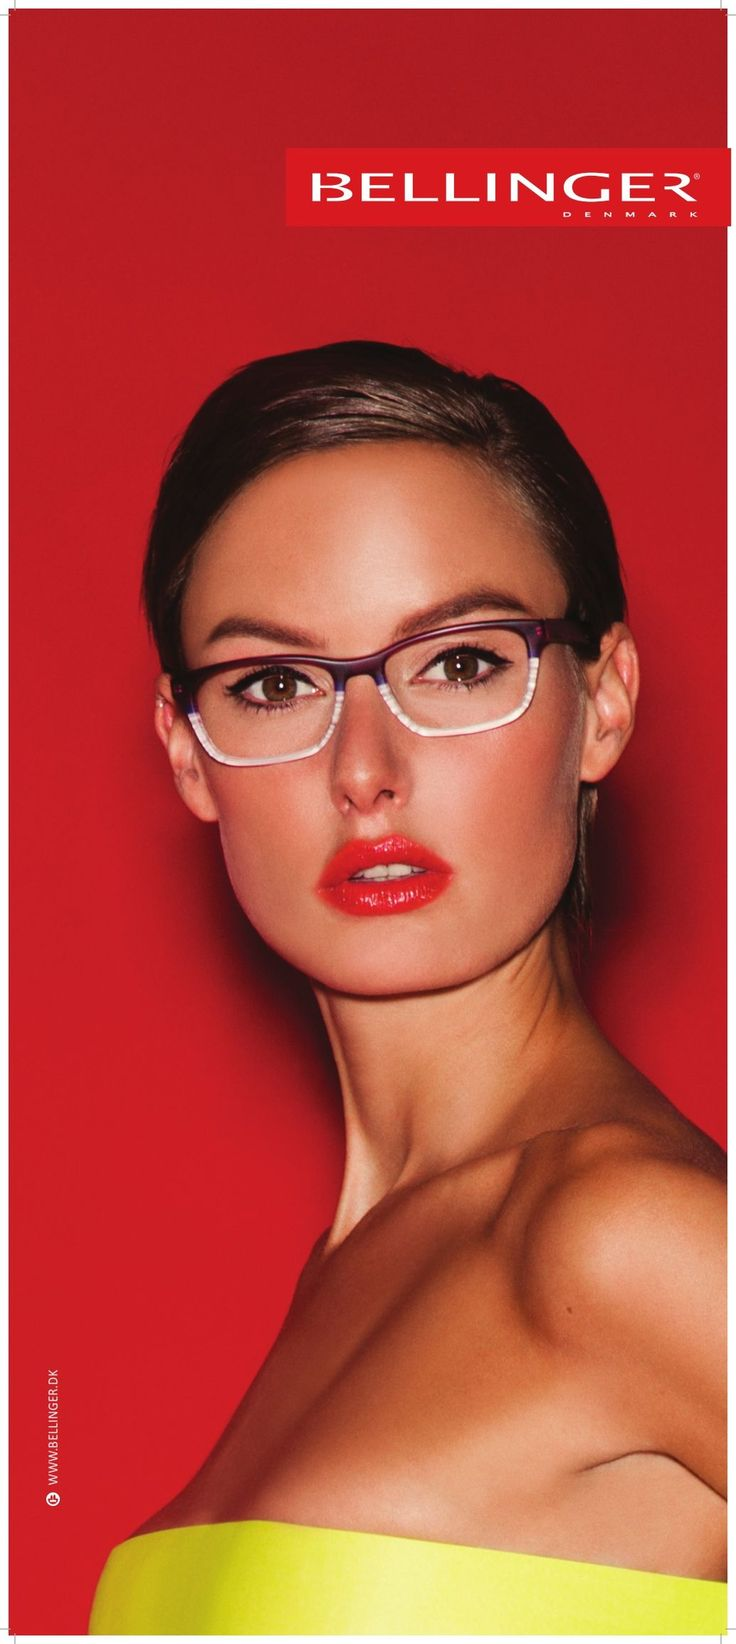 Bellinger eyewear from £160